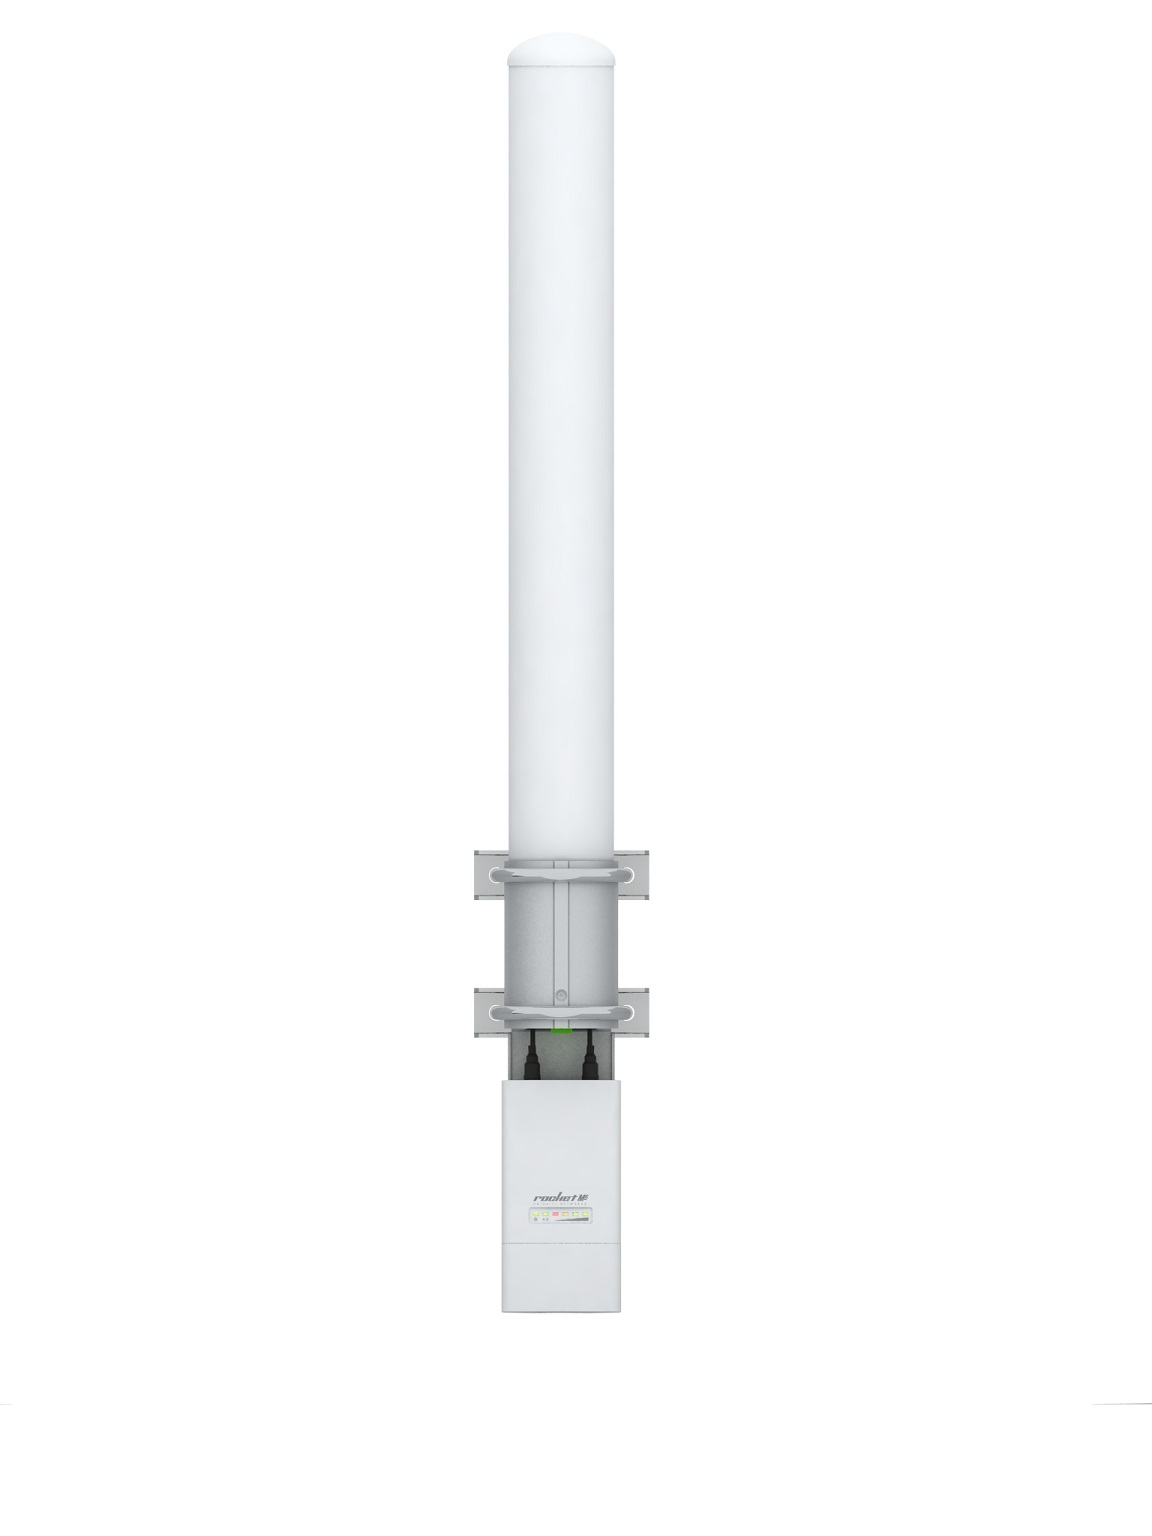 Ubiquiti 5GHz AirMax Dual Omni directional 13dBi Antenna - All mounting accessories and brackets included